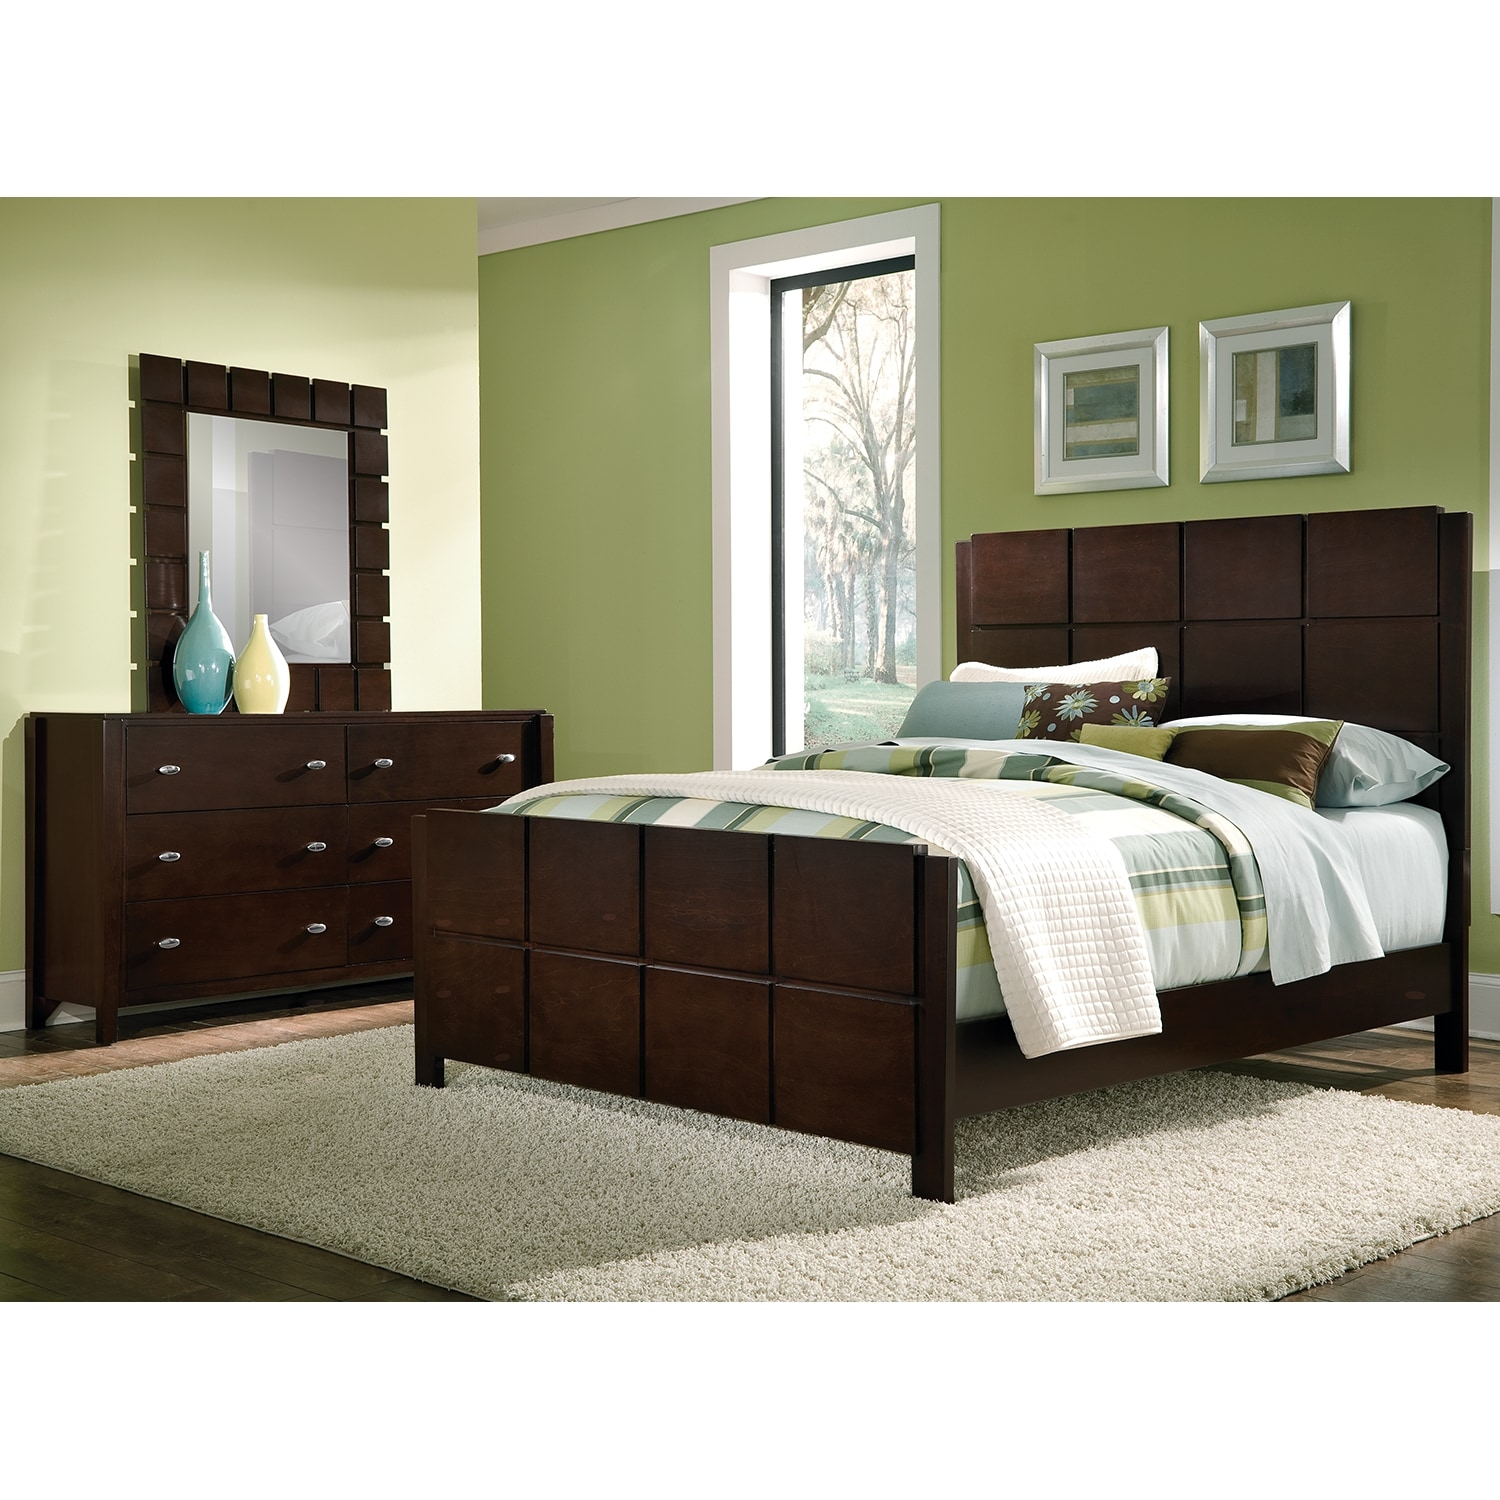 Shop bedroom packages american signature furniture for Cheap bedroom furniture packages